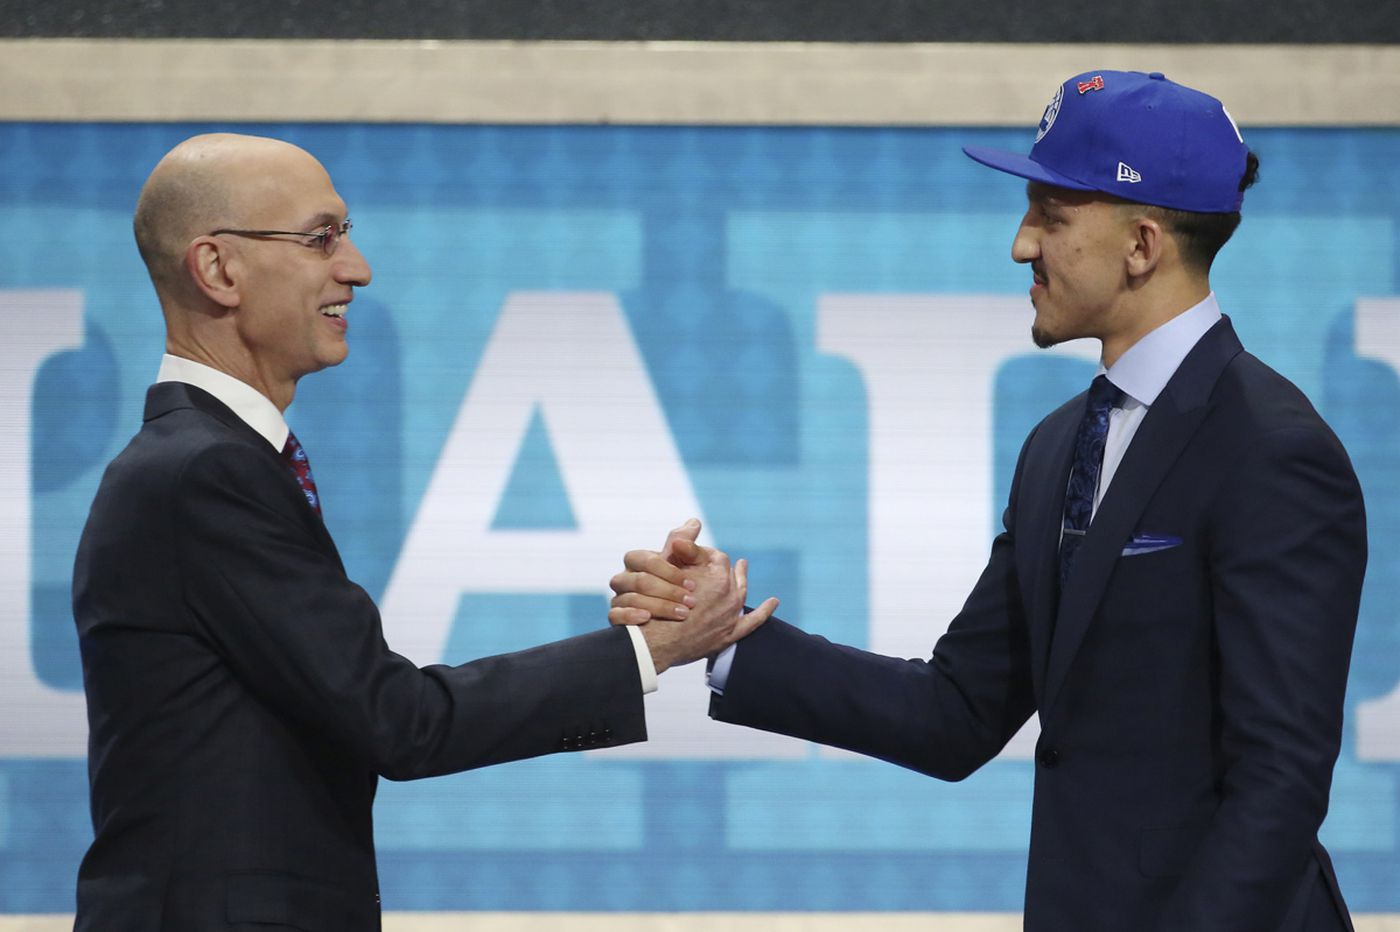 NBA draft 2019: What time will the Sixers pick?